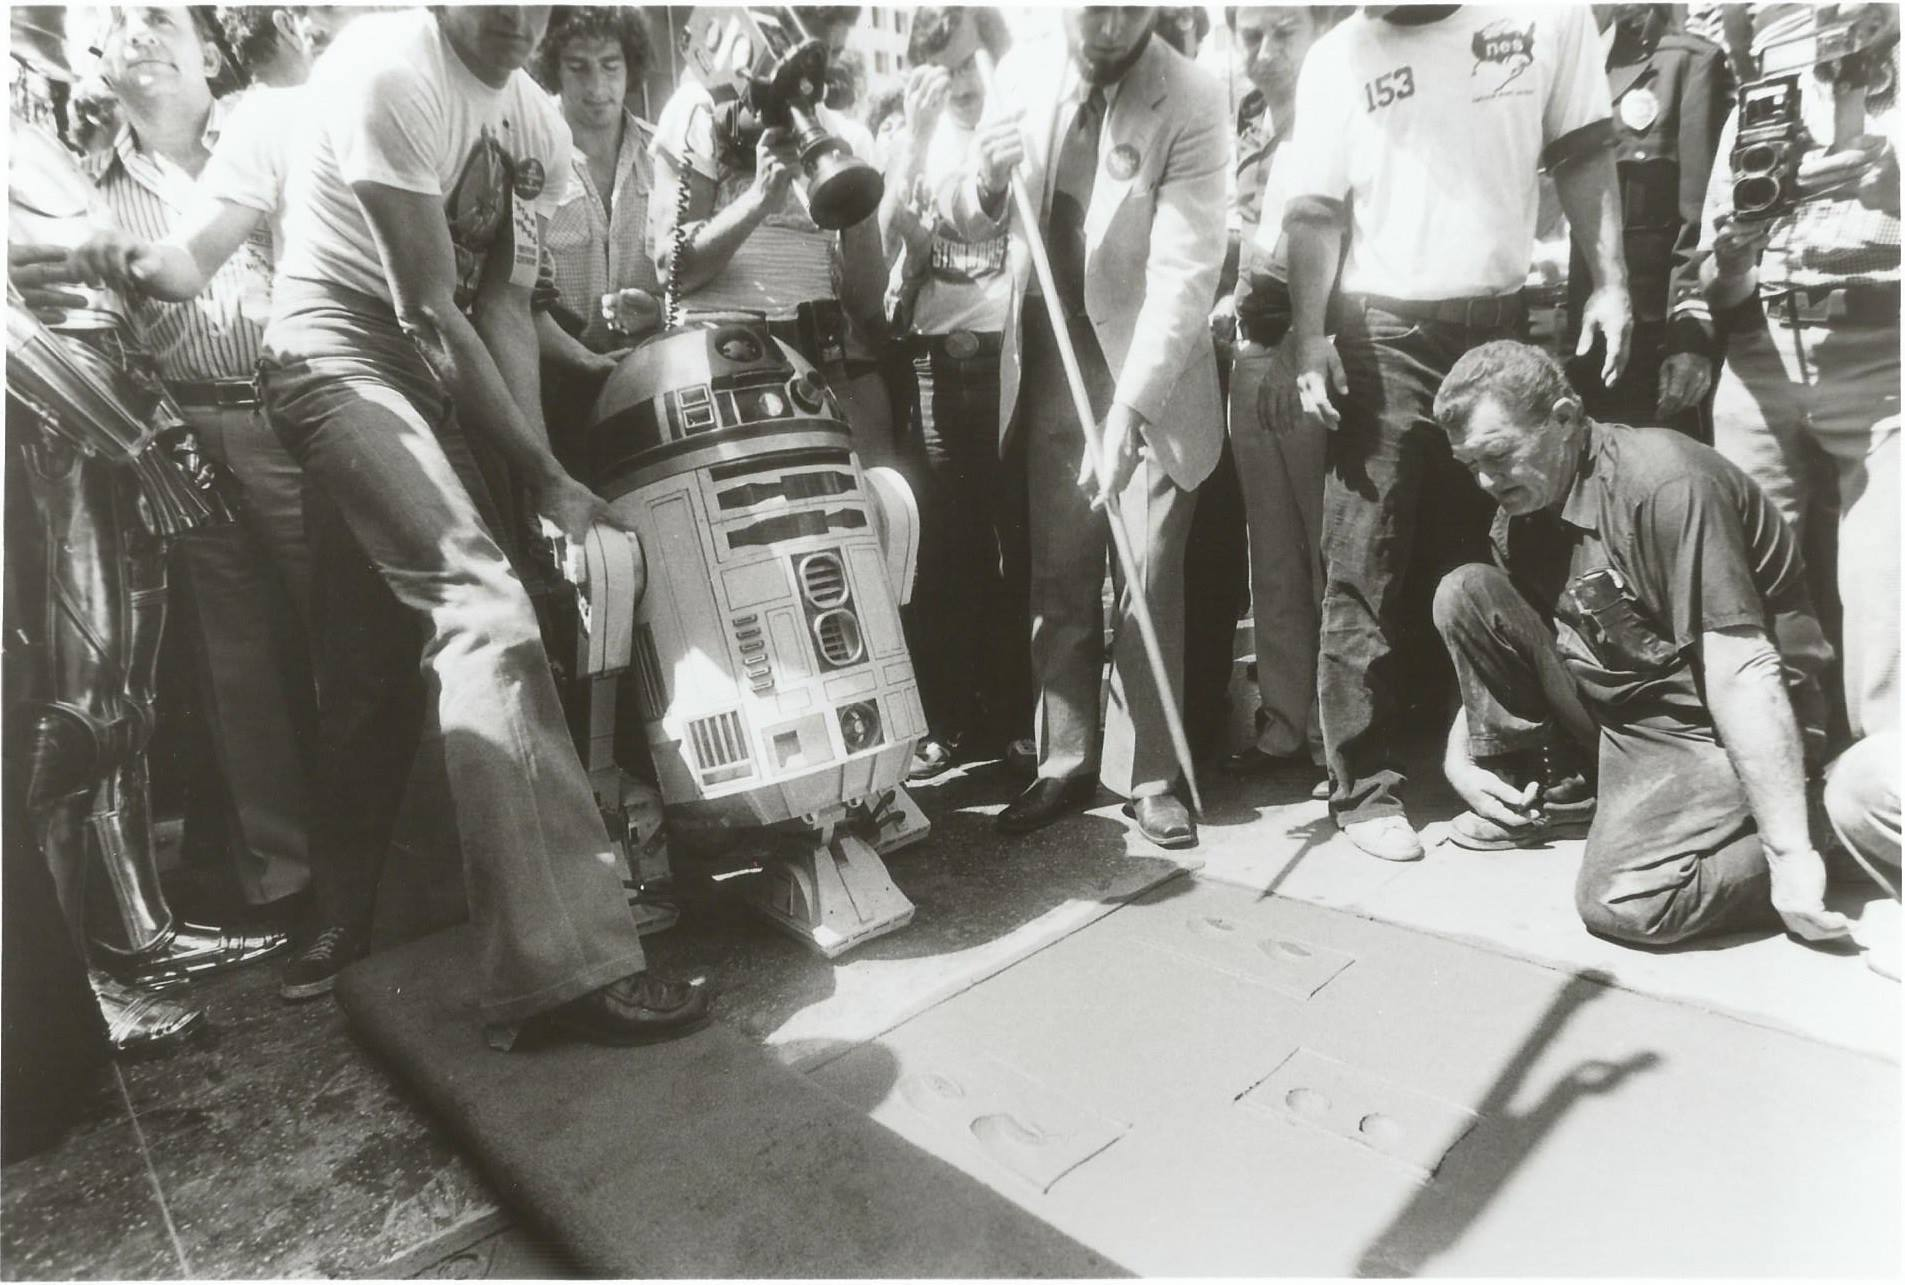 R2-D2 at Mann's Chinese Theatre in 1977